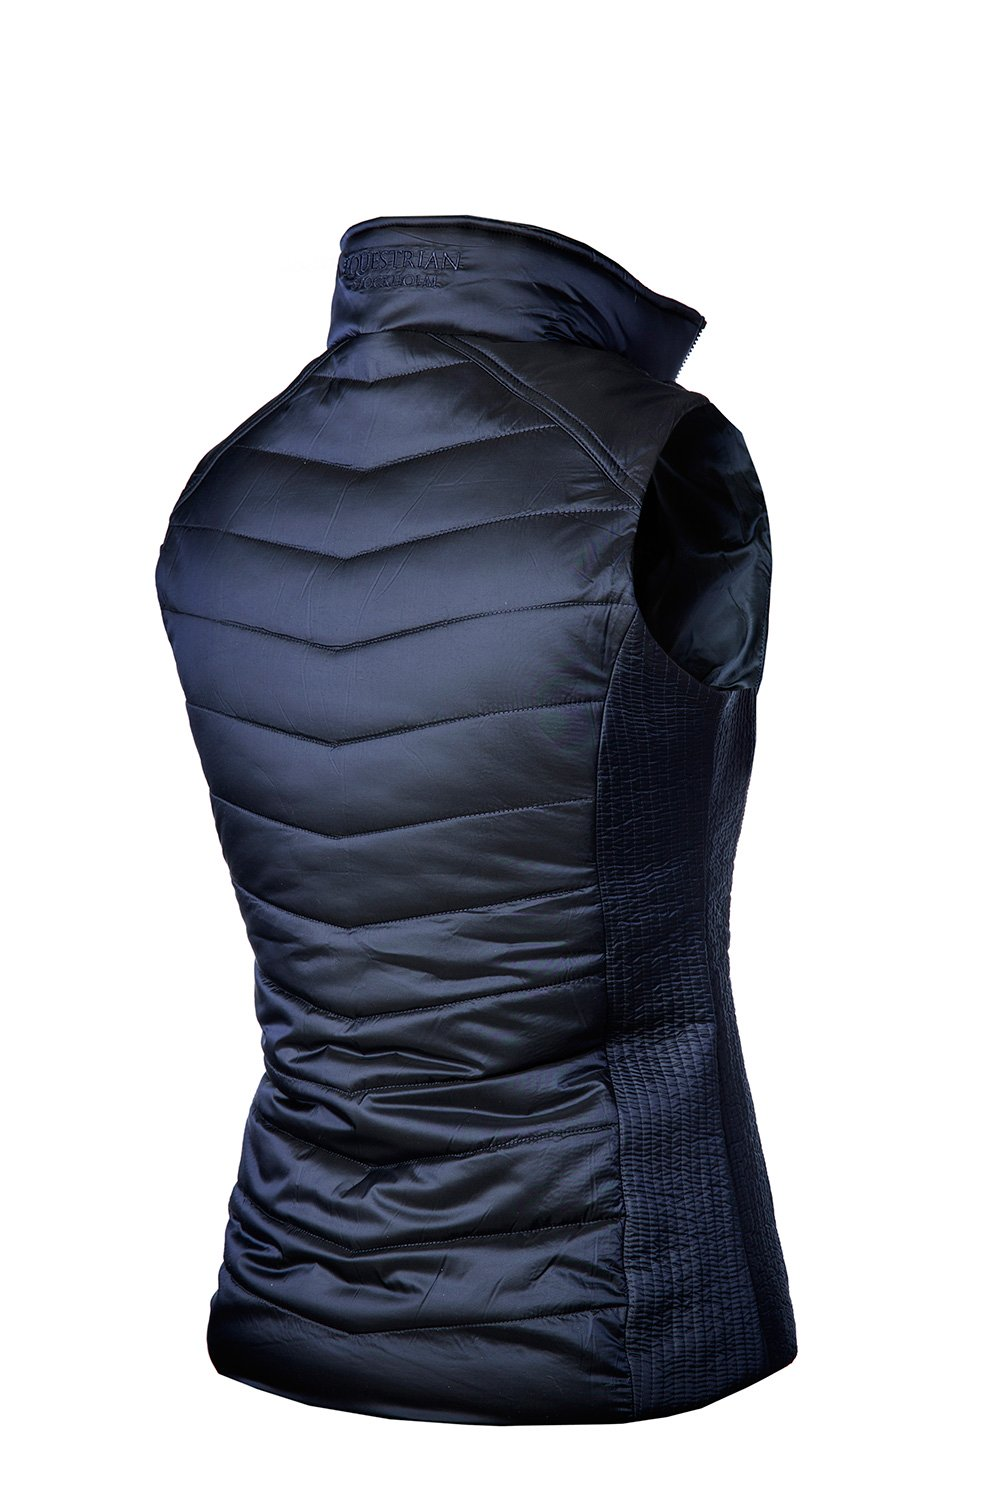 Equestrian Stockholm Navy Classic Vest - The Dressage Store